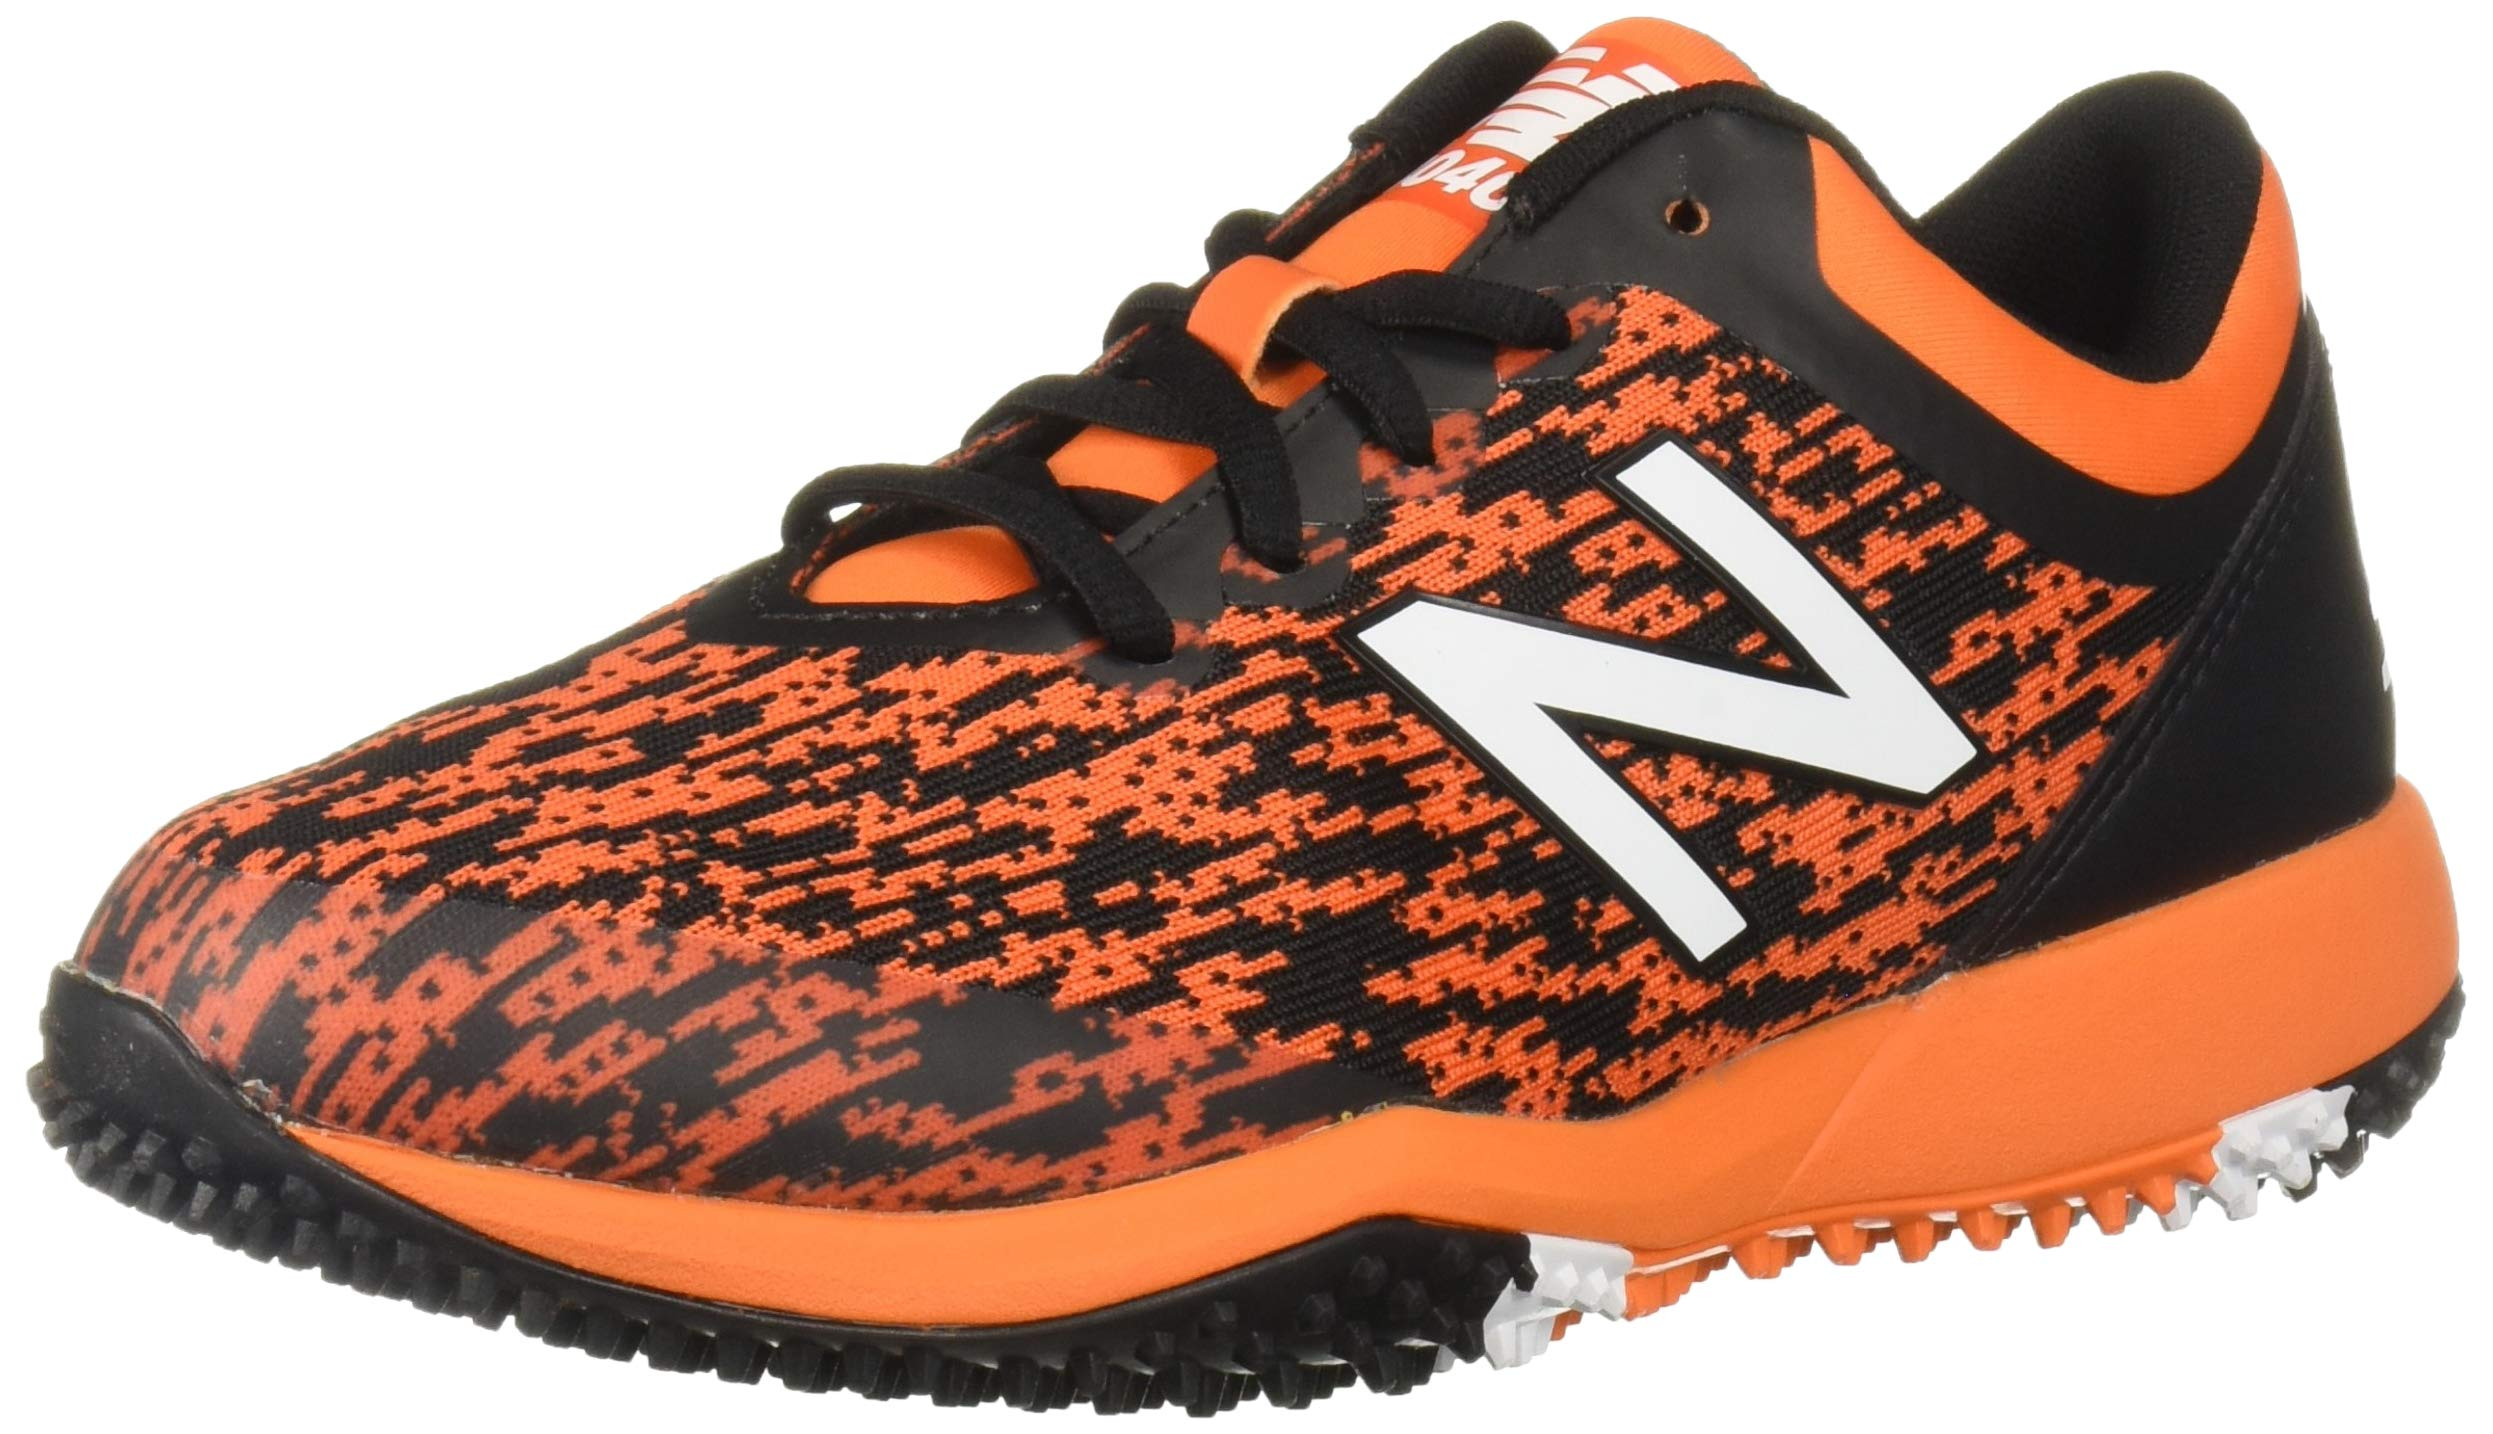 New Balance Men's 4040v5 Turf Track and Field Shoe, Black/Orange, 5 D US